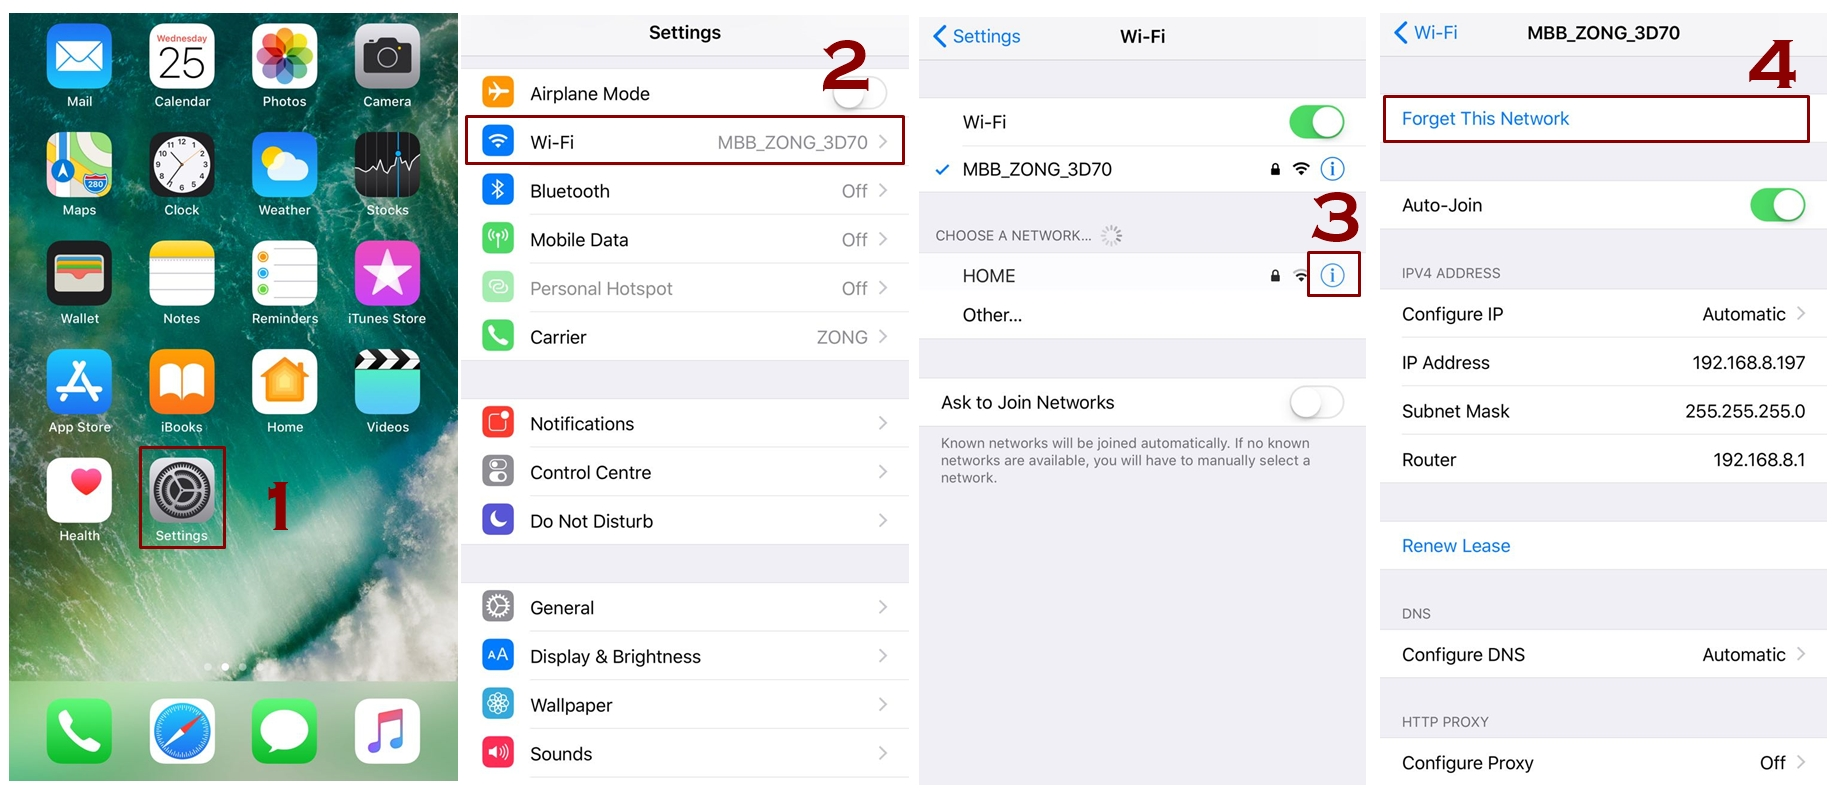 How to forget WiFi network in iPhone Remove Wifi Network techbytex - How to forget WiFi network in iPhone - Remove Wifi Network